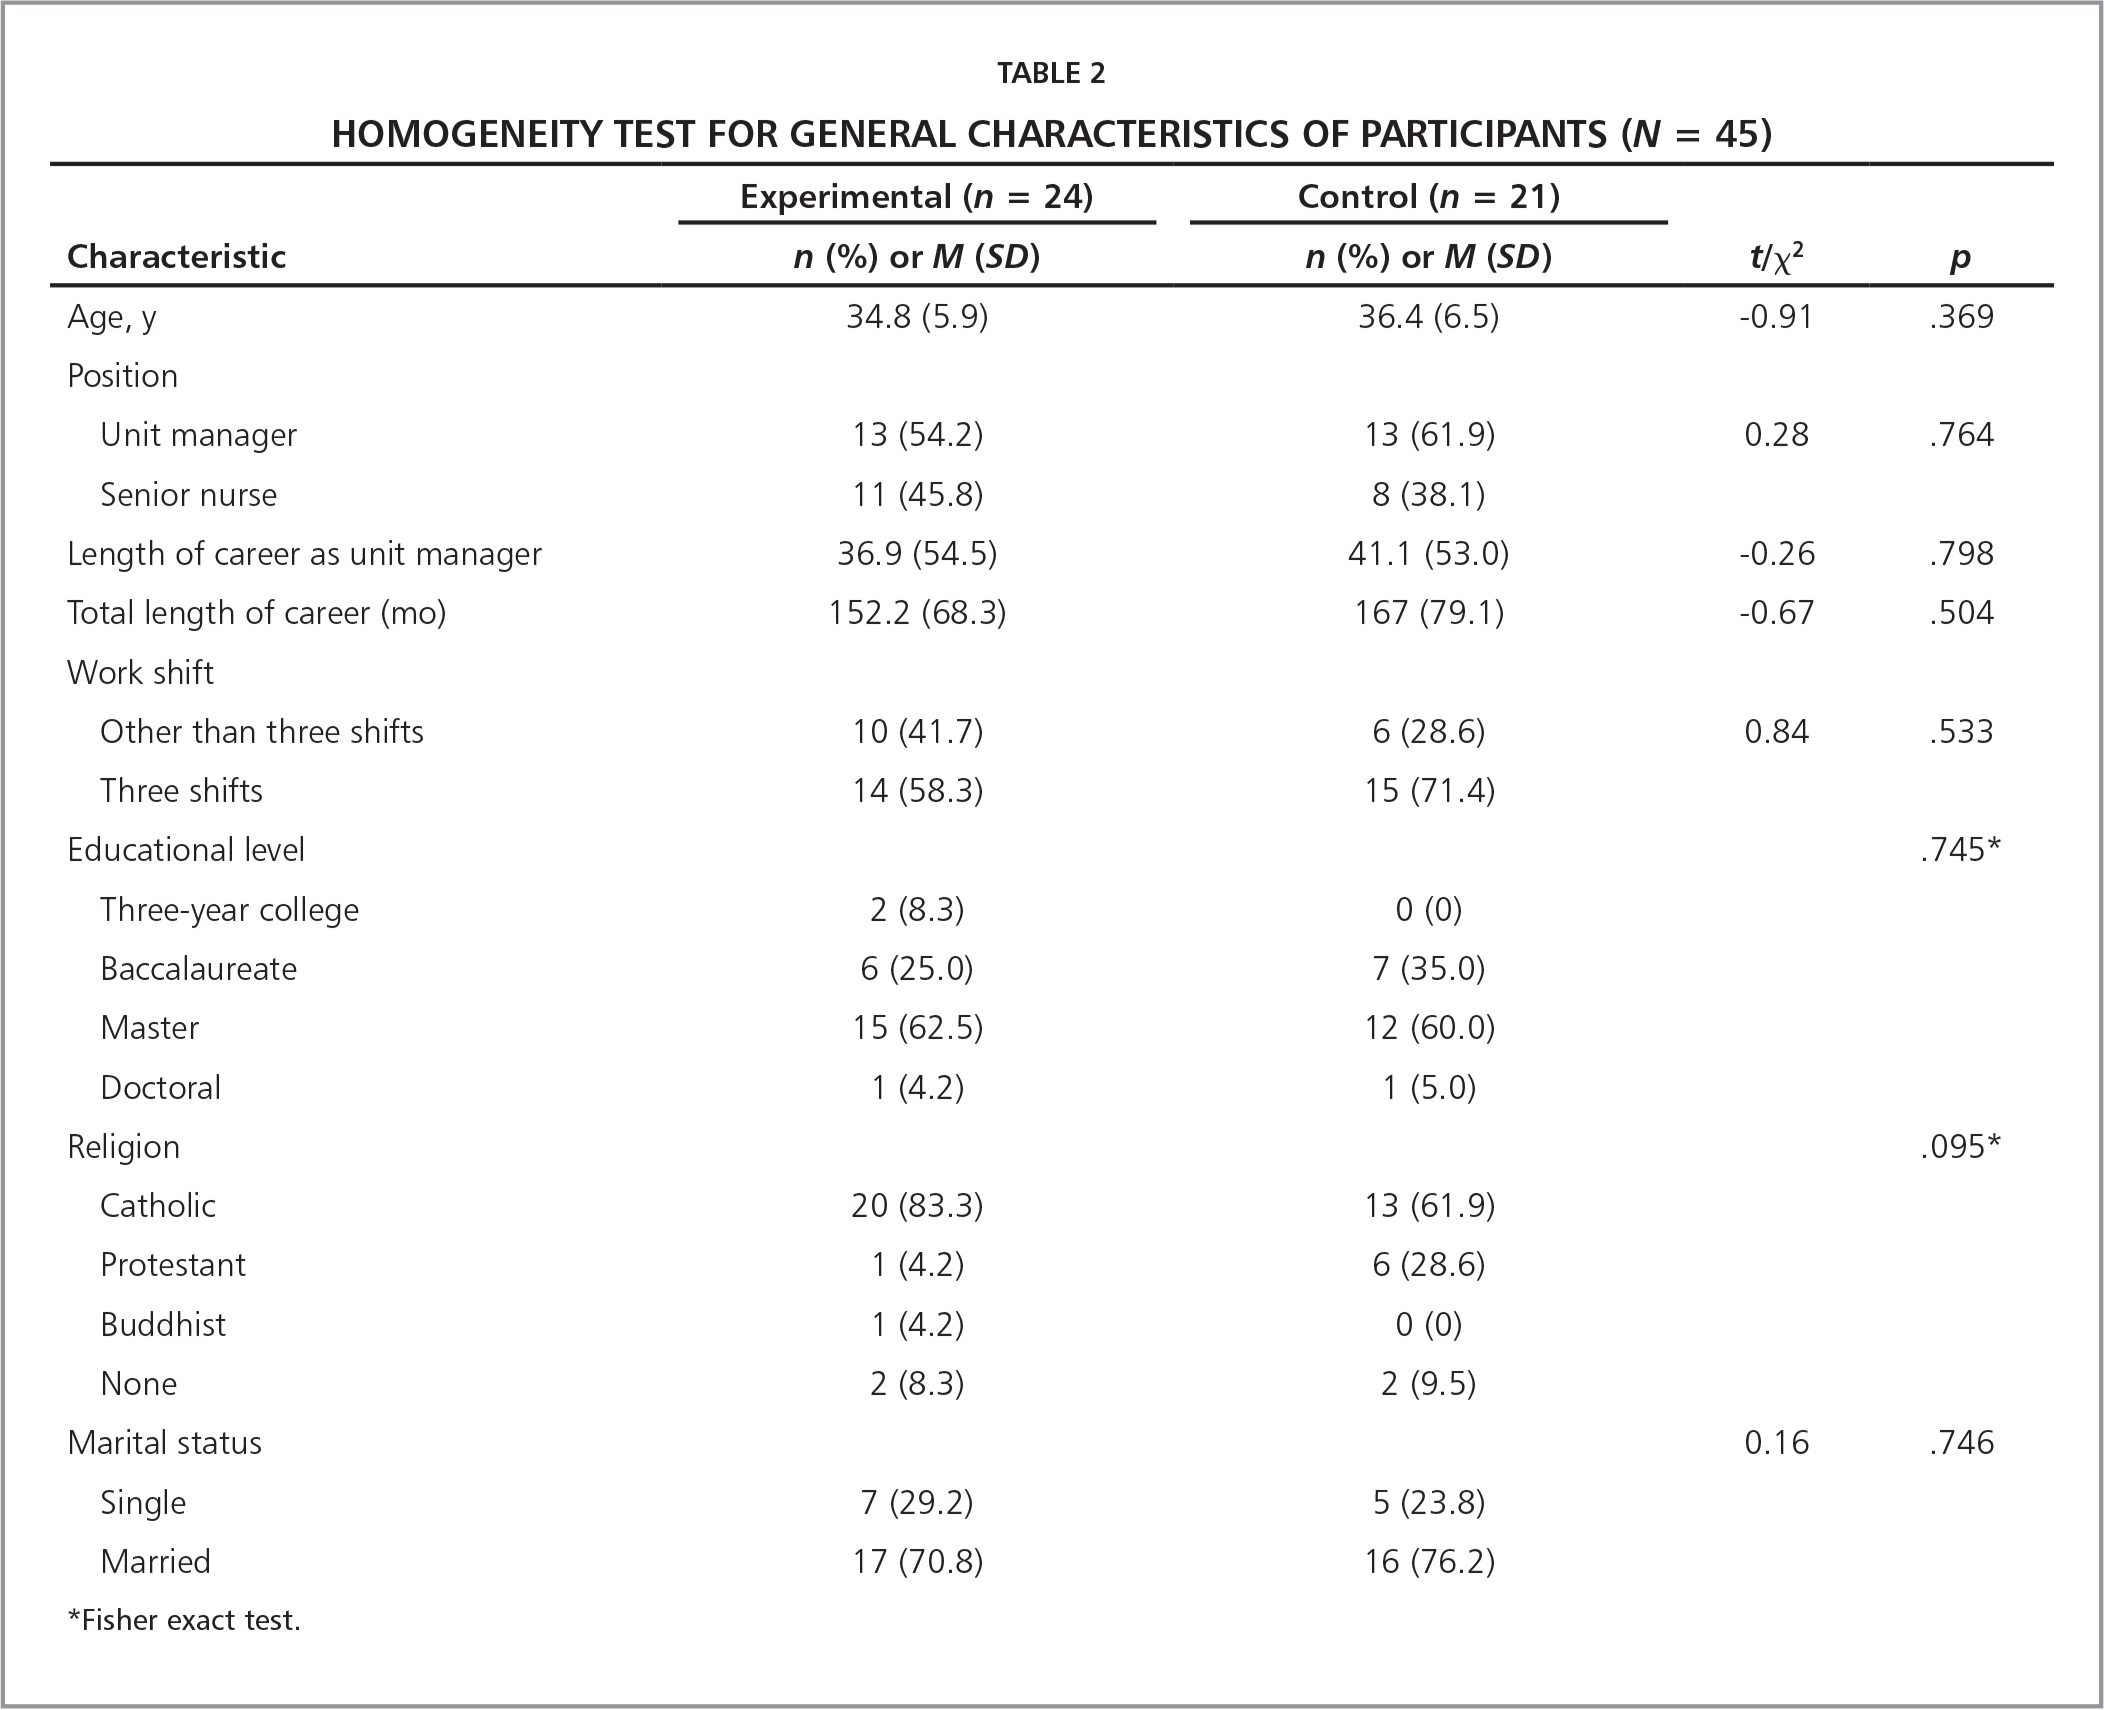 Homogeneity Test for General Characteristics of Participants (N = 45)